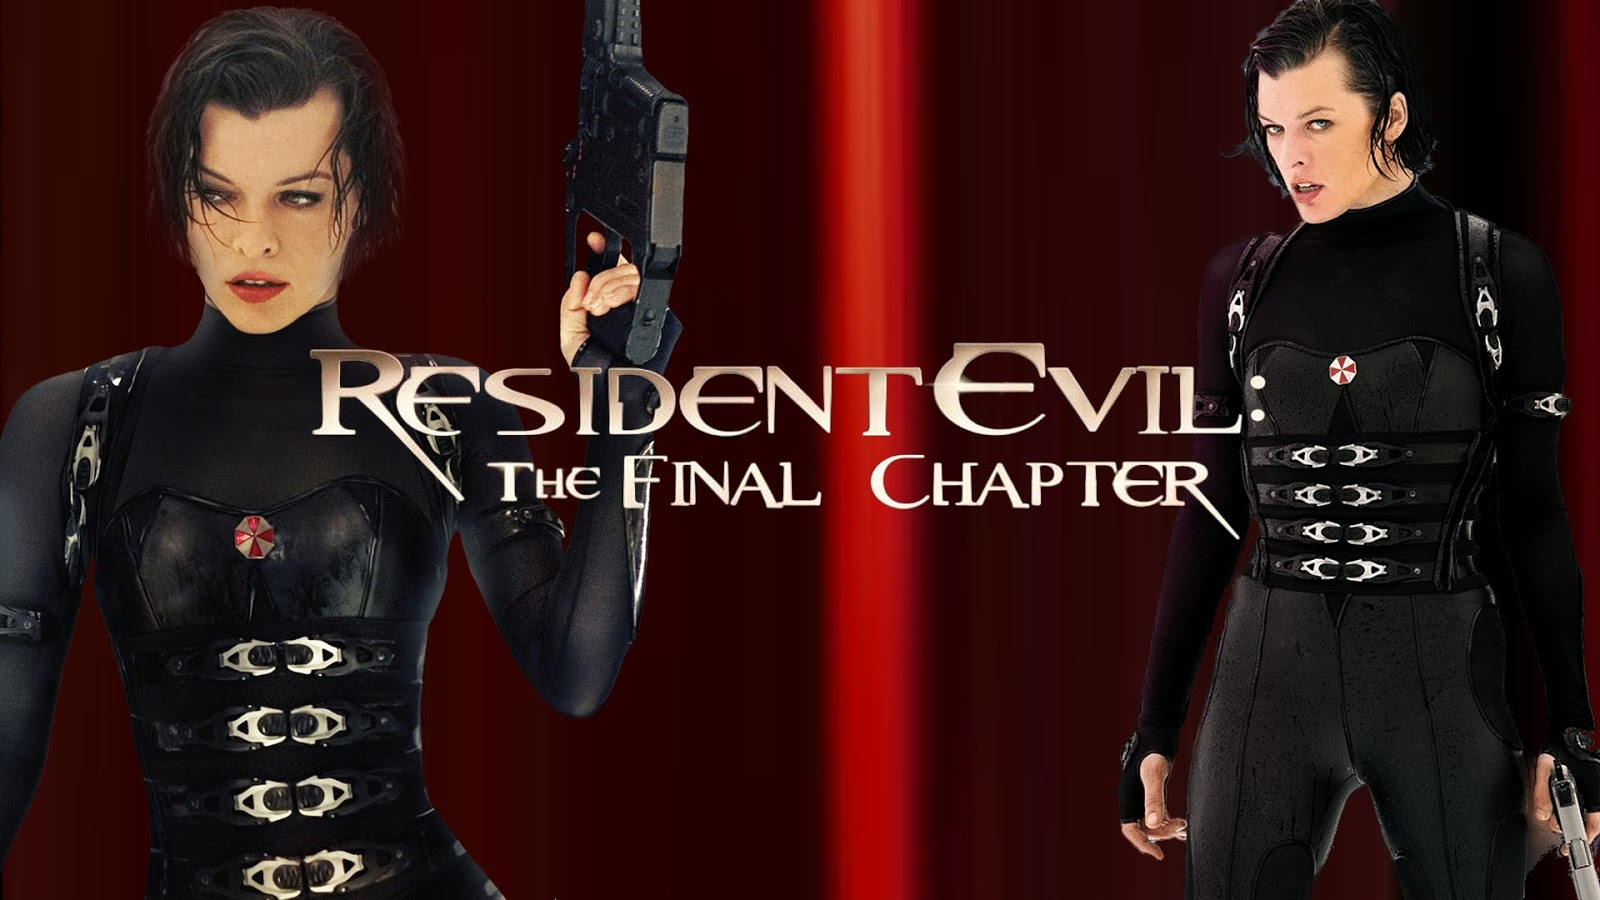 Resident Evil The Final Chapter: HD Wallpapers : Resident Evil 6 The Final Chapter Hd